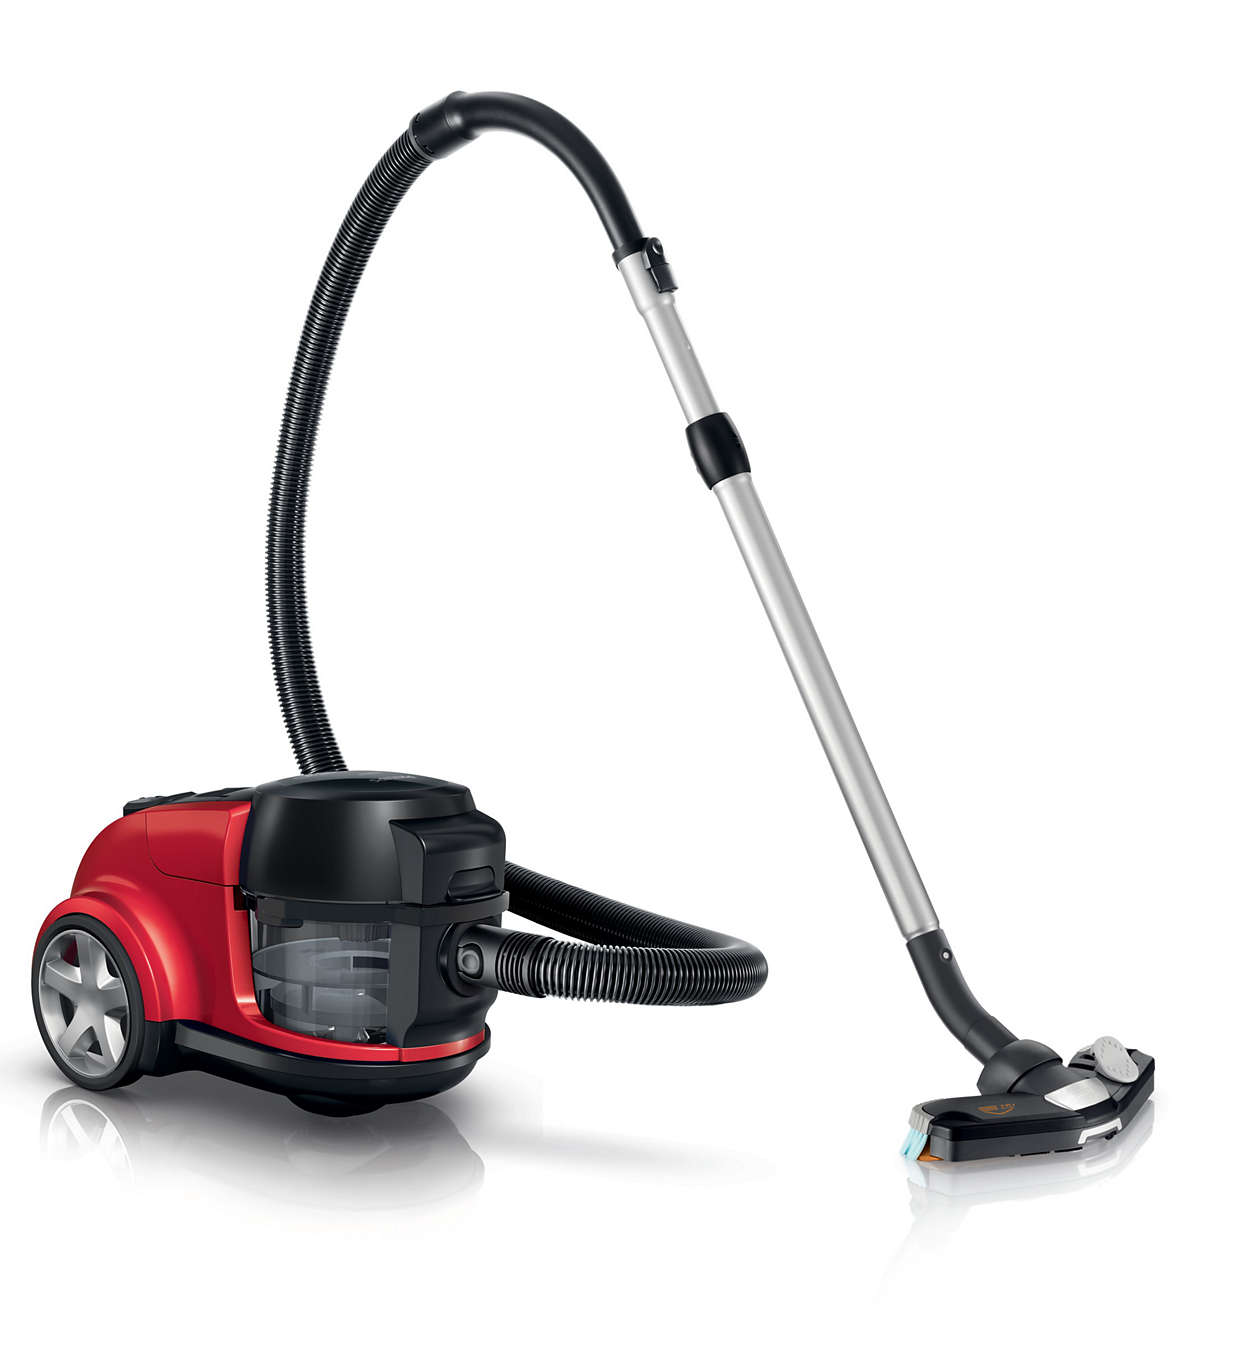 3x clean with the power of water - Vacuum Cleaners With Water